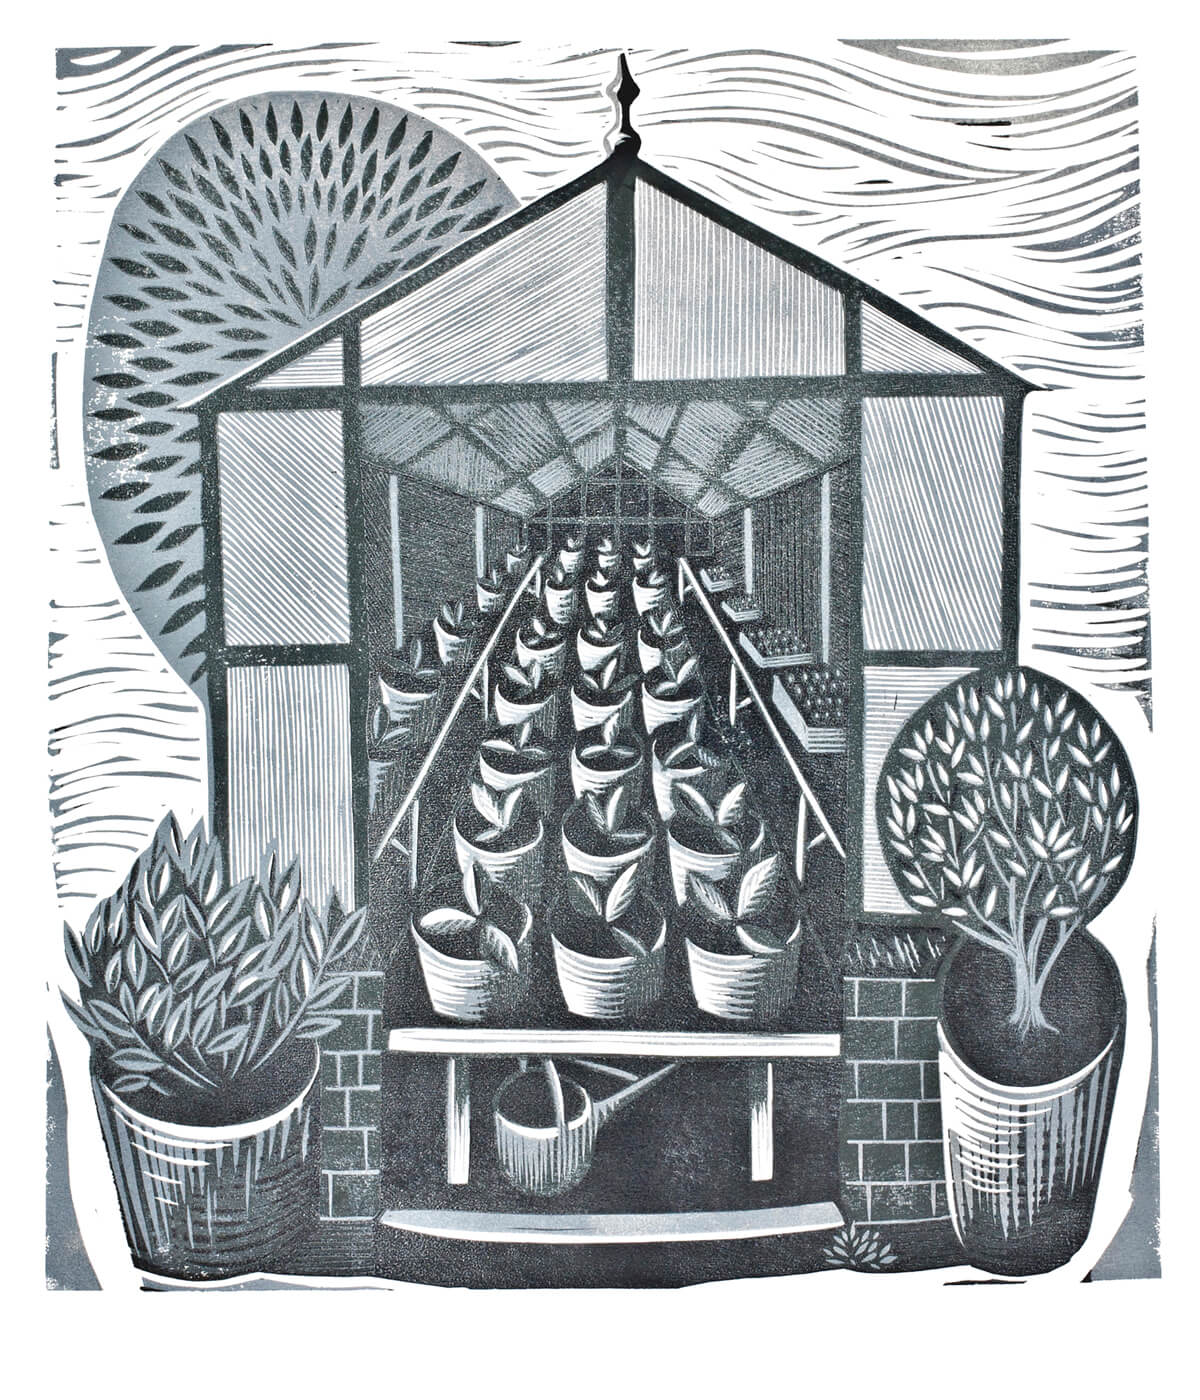 Greenhouse, linocut print by Sarah Kirby